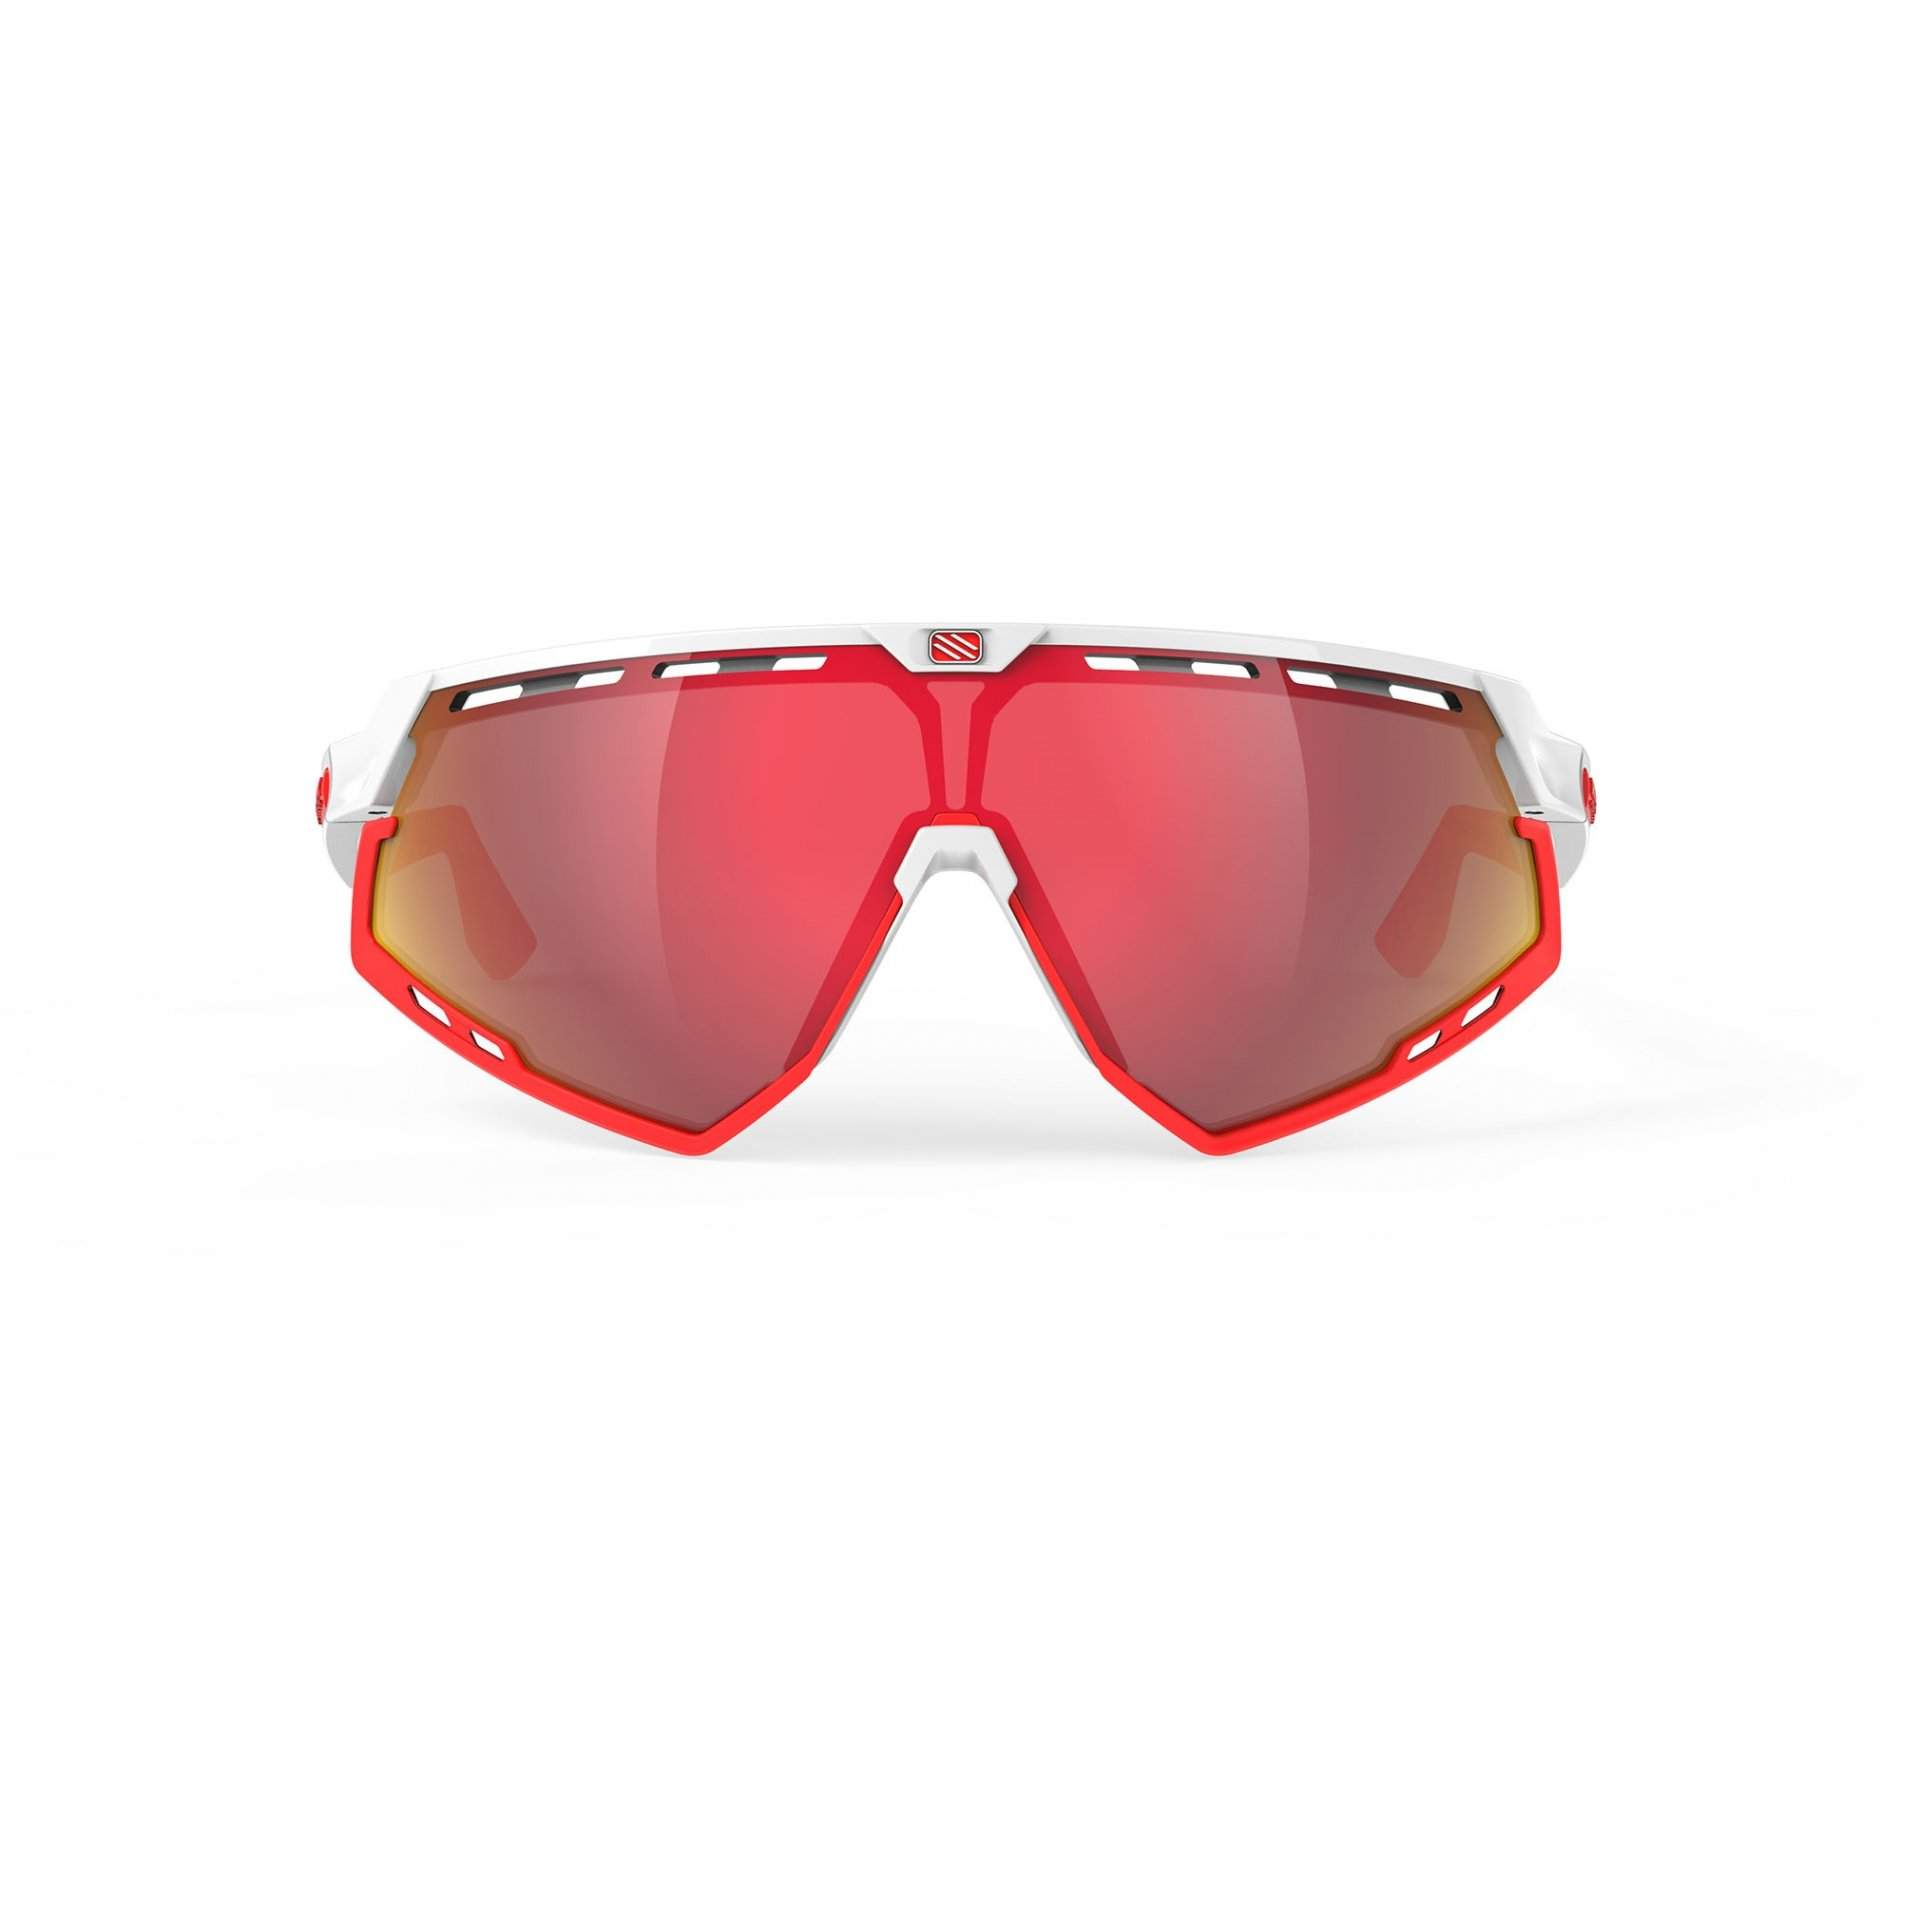 OKULARY RUDY PROJECT DEFENDER MULTILASER RED + WHITE GLOSS|BUMPRES RED FLUO SP5238690000 Z PRZODU